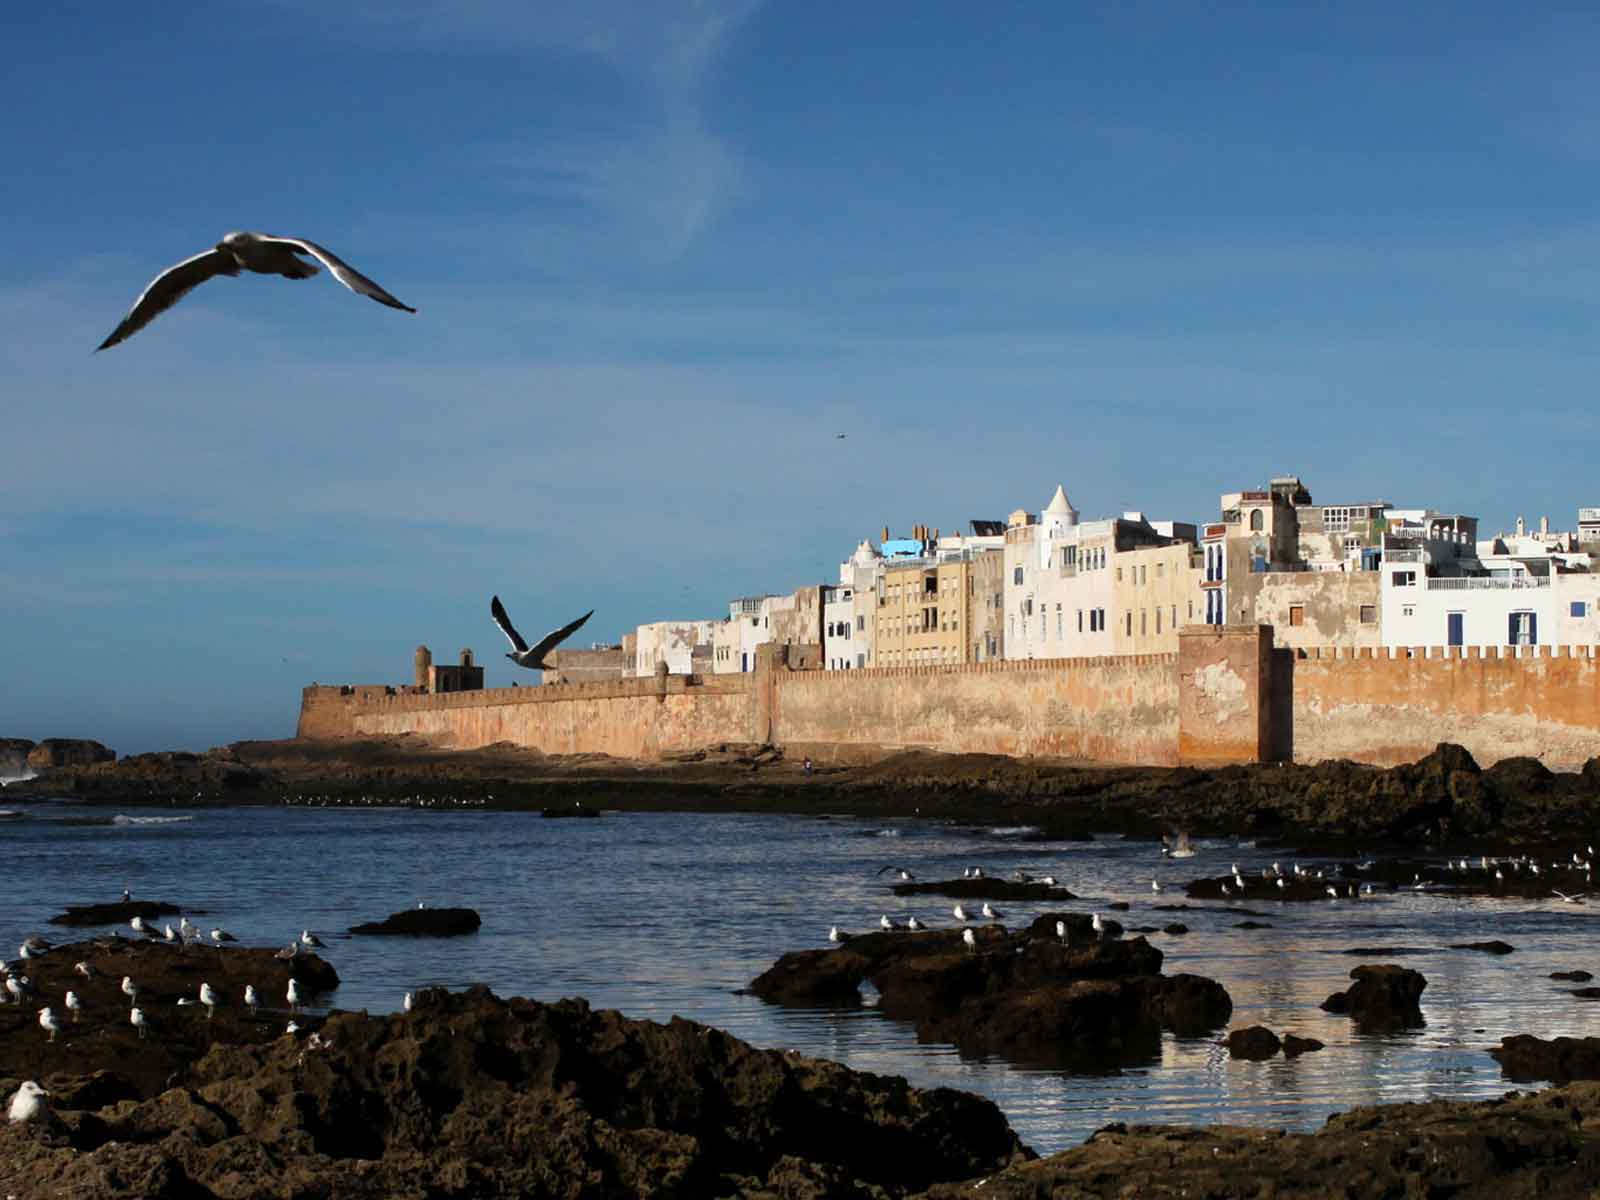 Excursion to Essaouira from Marrakech